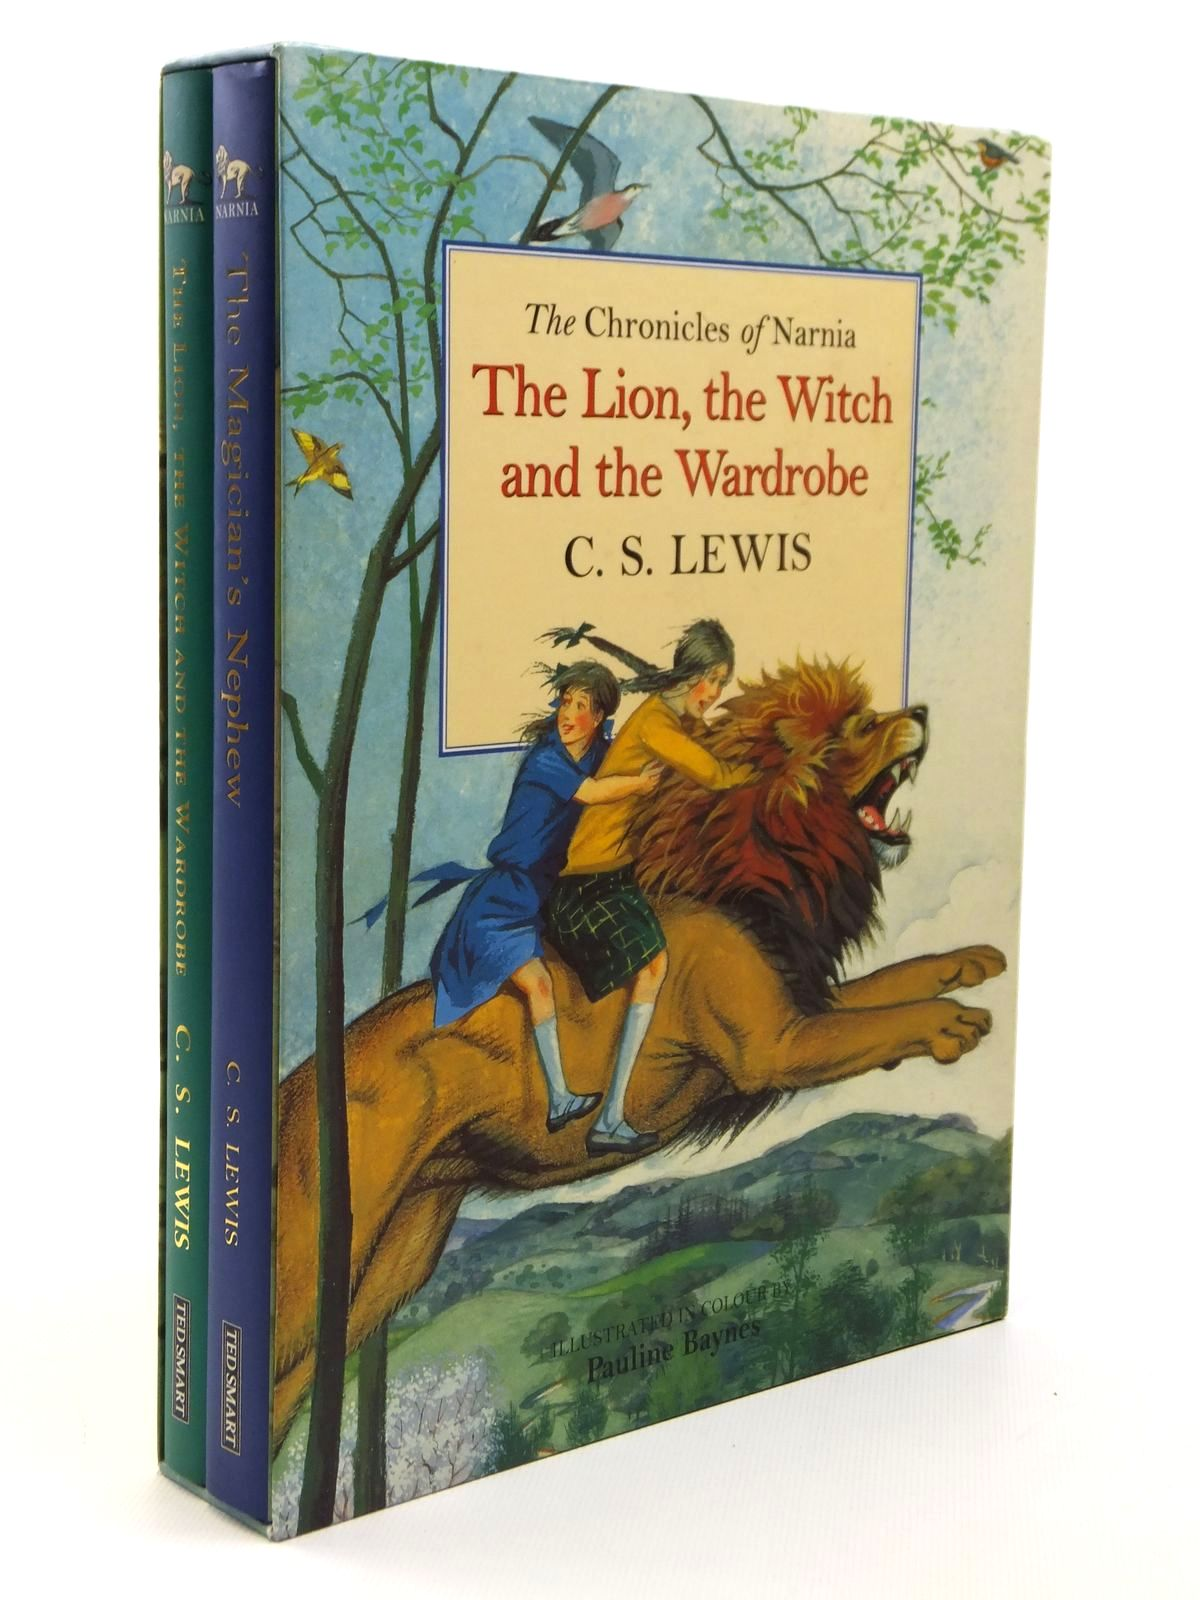 the lion the witch and the wardrobe by cs lewis